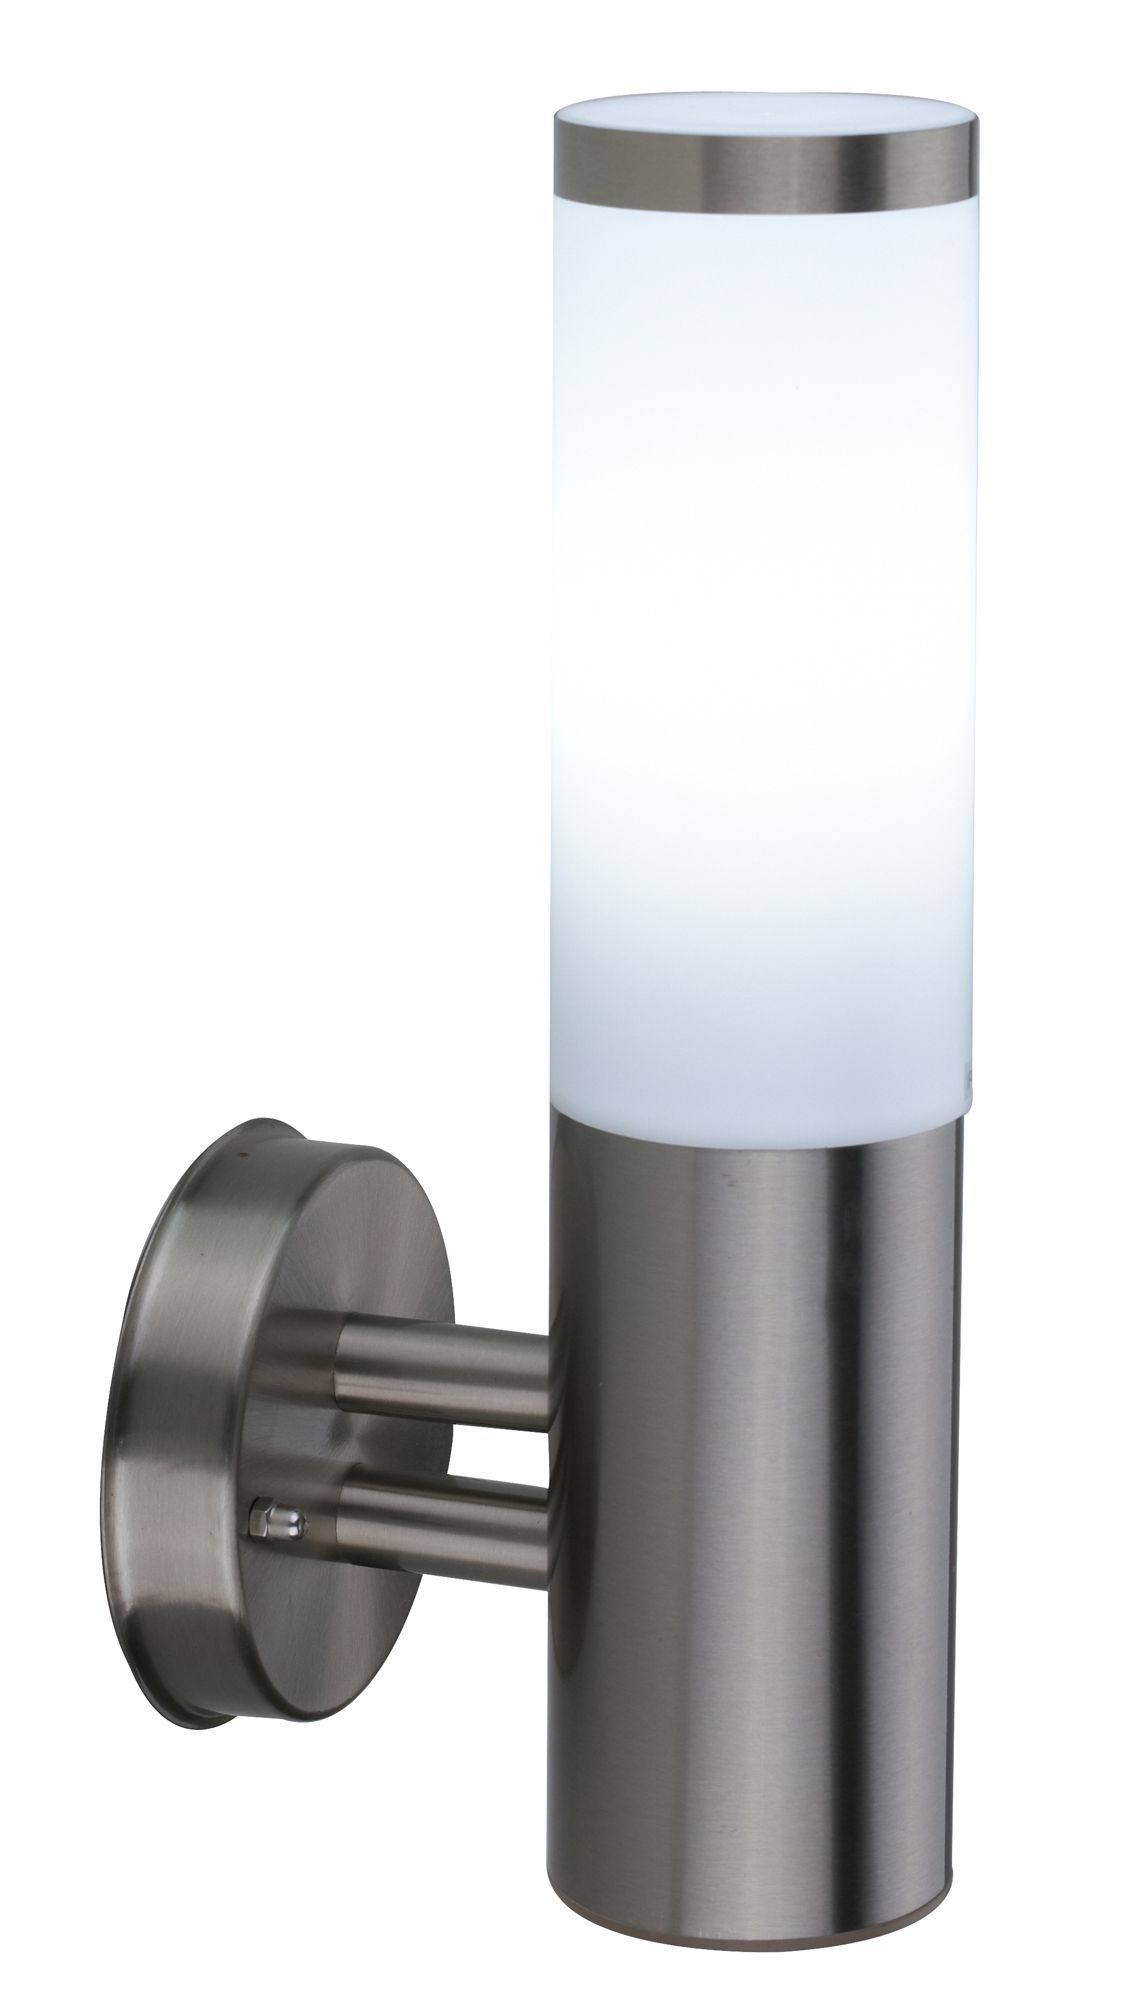 Osram External Wall Lights : Cano Mains Powered External Wall Light Departments DIY at B&Q